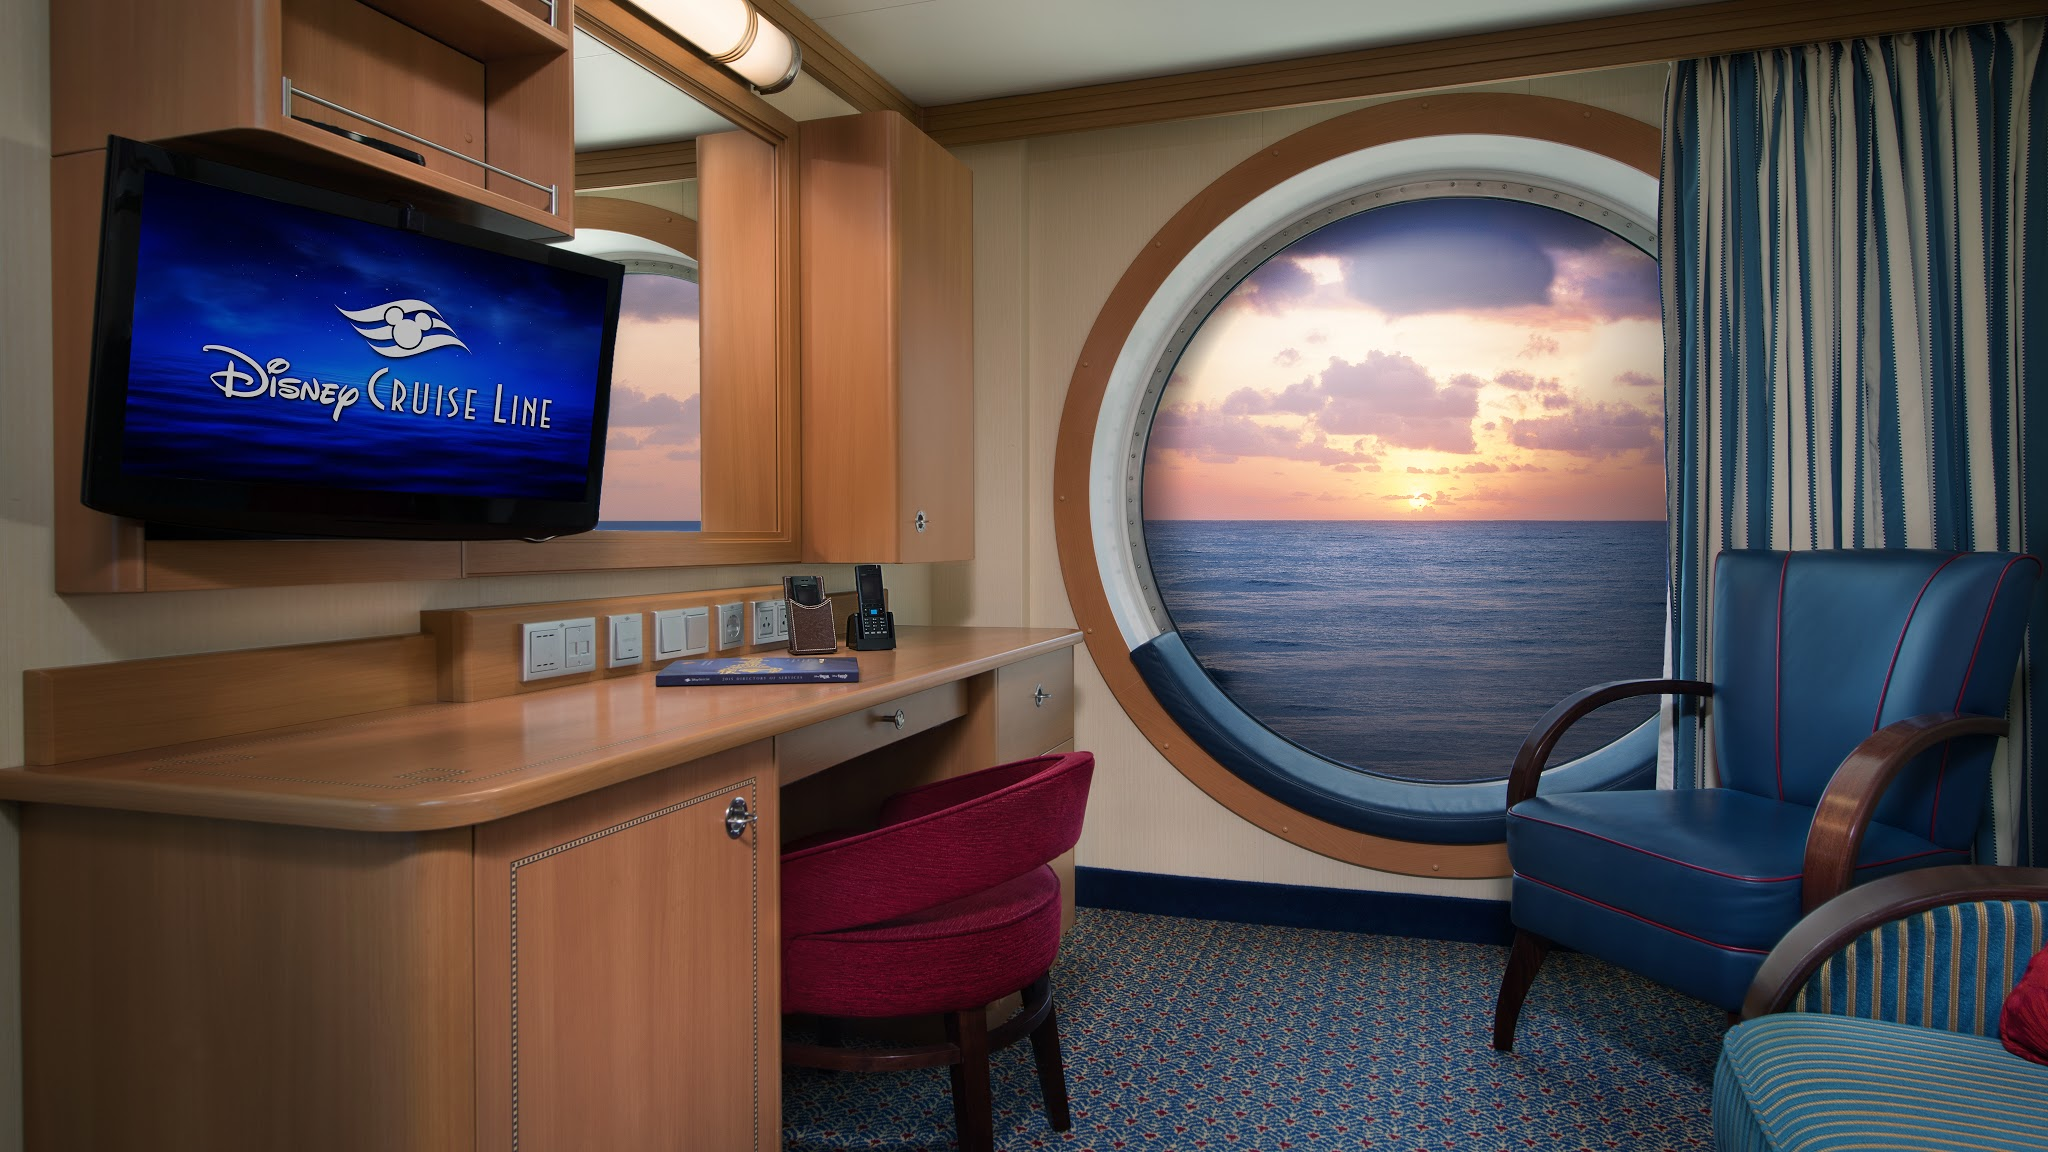 Save with Disney Cruise Line promo codes and coupons for November Today's top Disney Cruise Line offer: $ Statement Credit. Find 2 Disney Cruise Line coupons and discounts at agencja-nieruchomosci.tk Tested and verified on November 29,